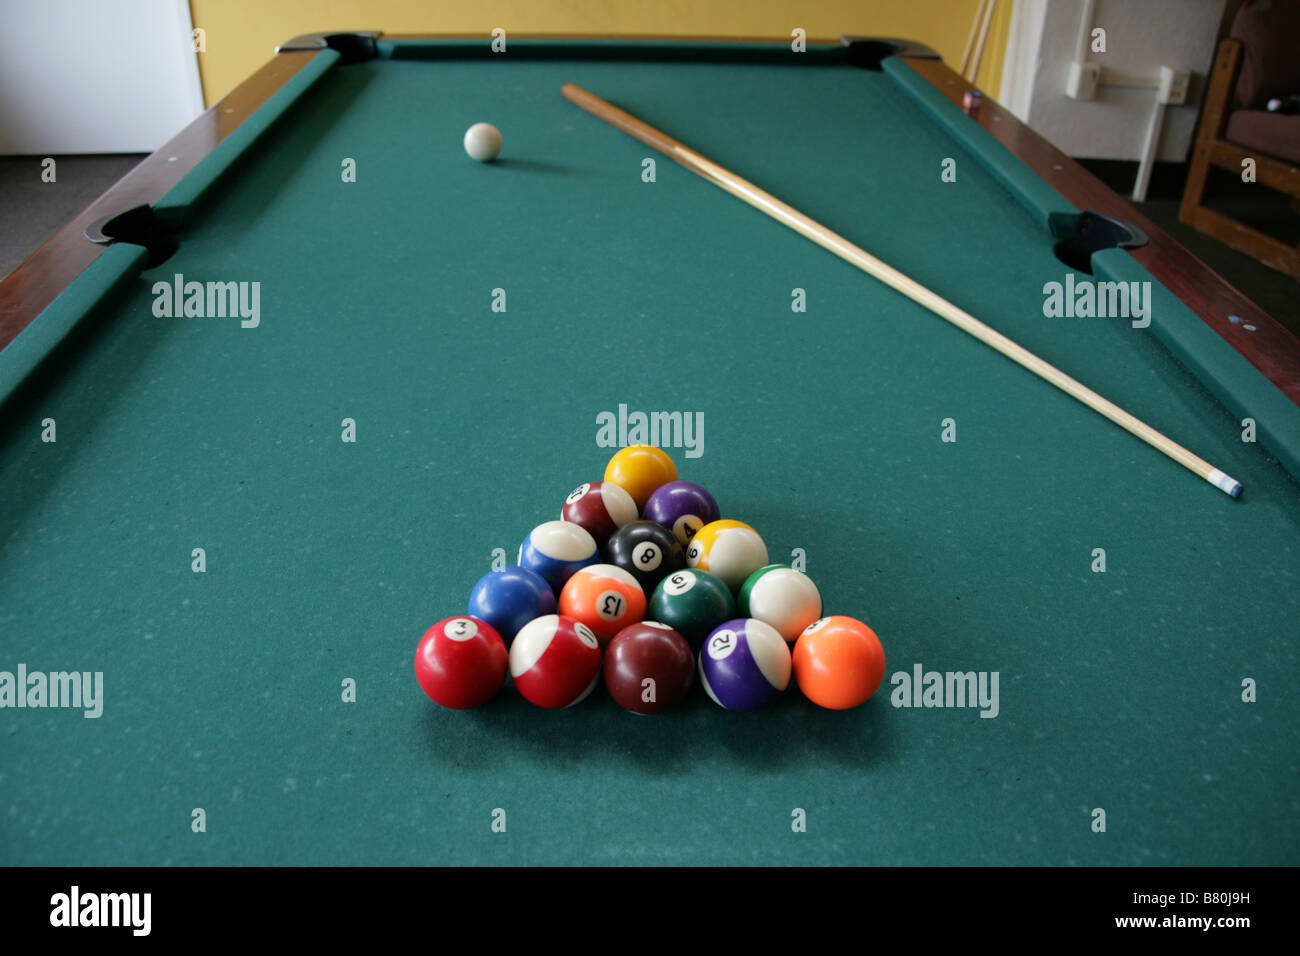 Pool Table Setup >> Pool Table Set Up For A Game Stock Photo 22141997 Alamy